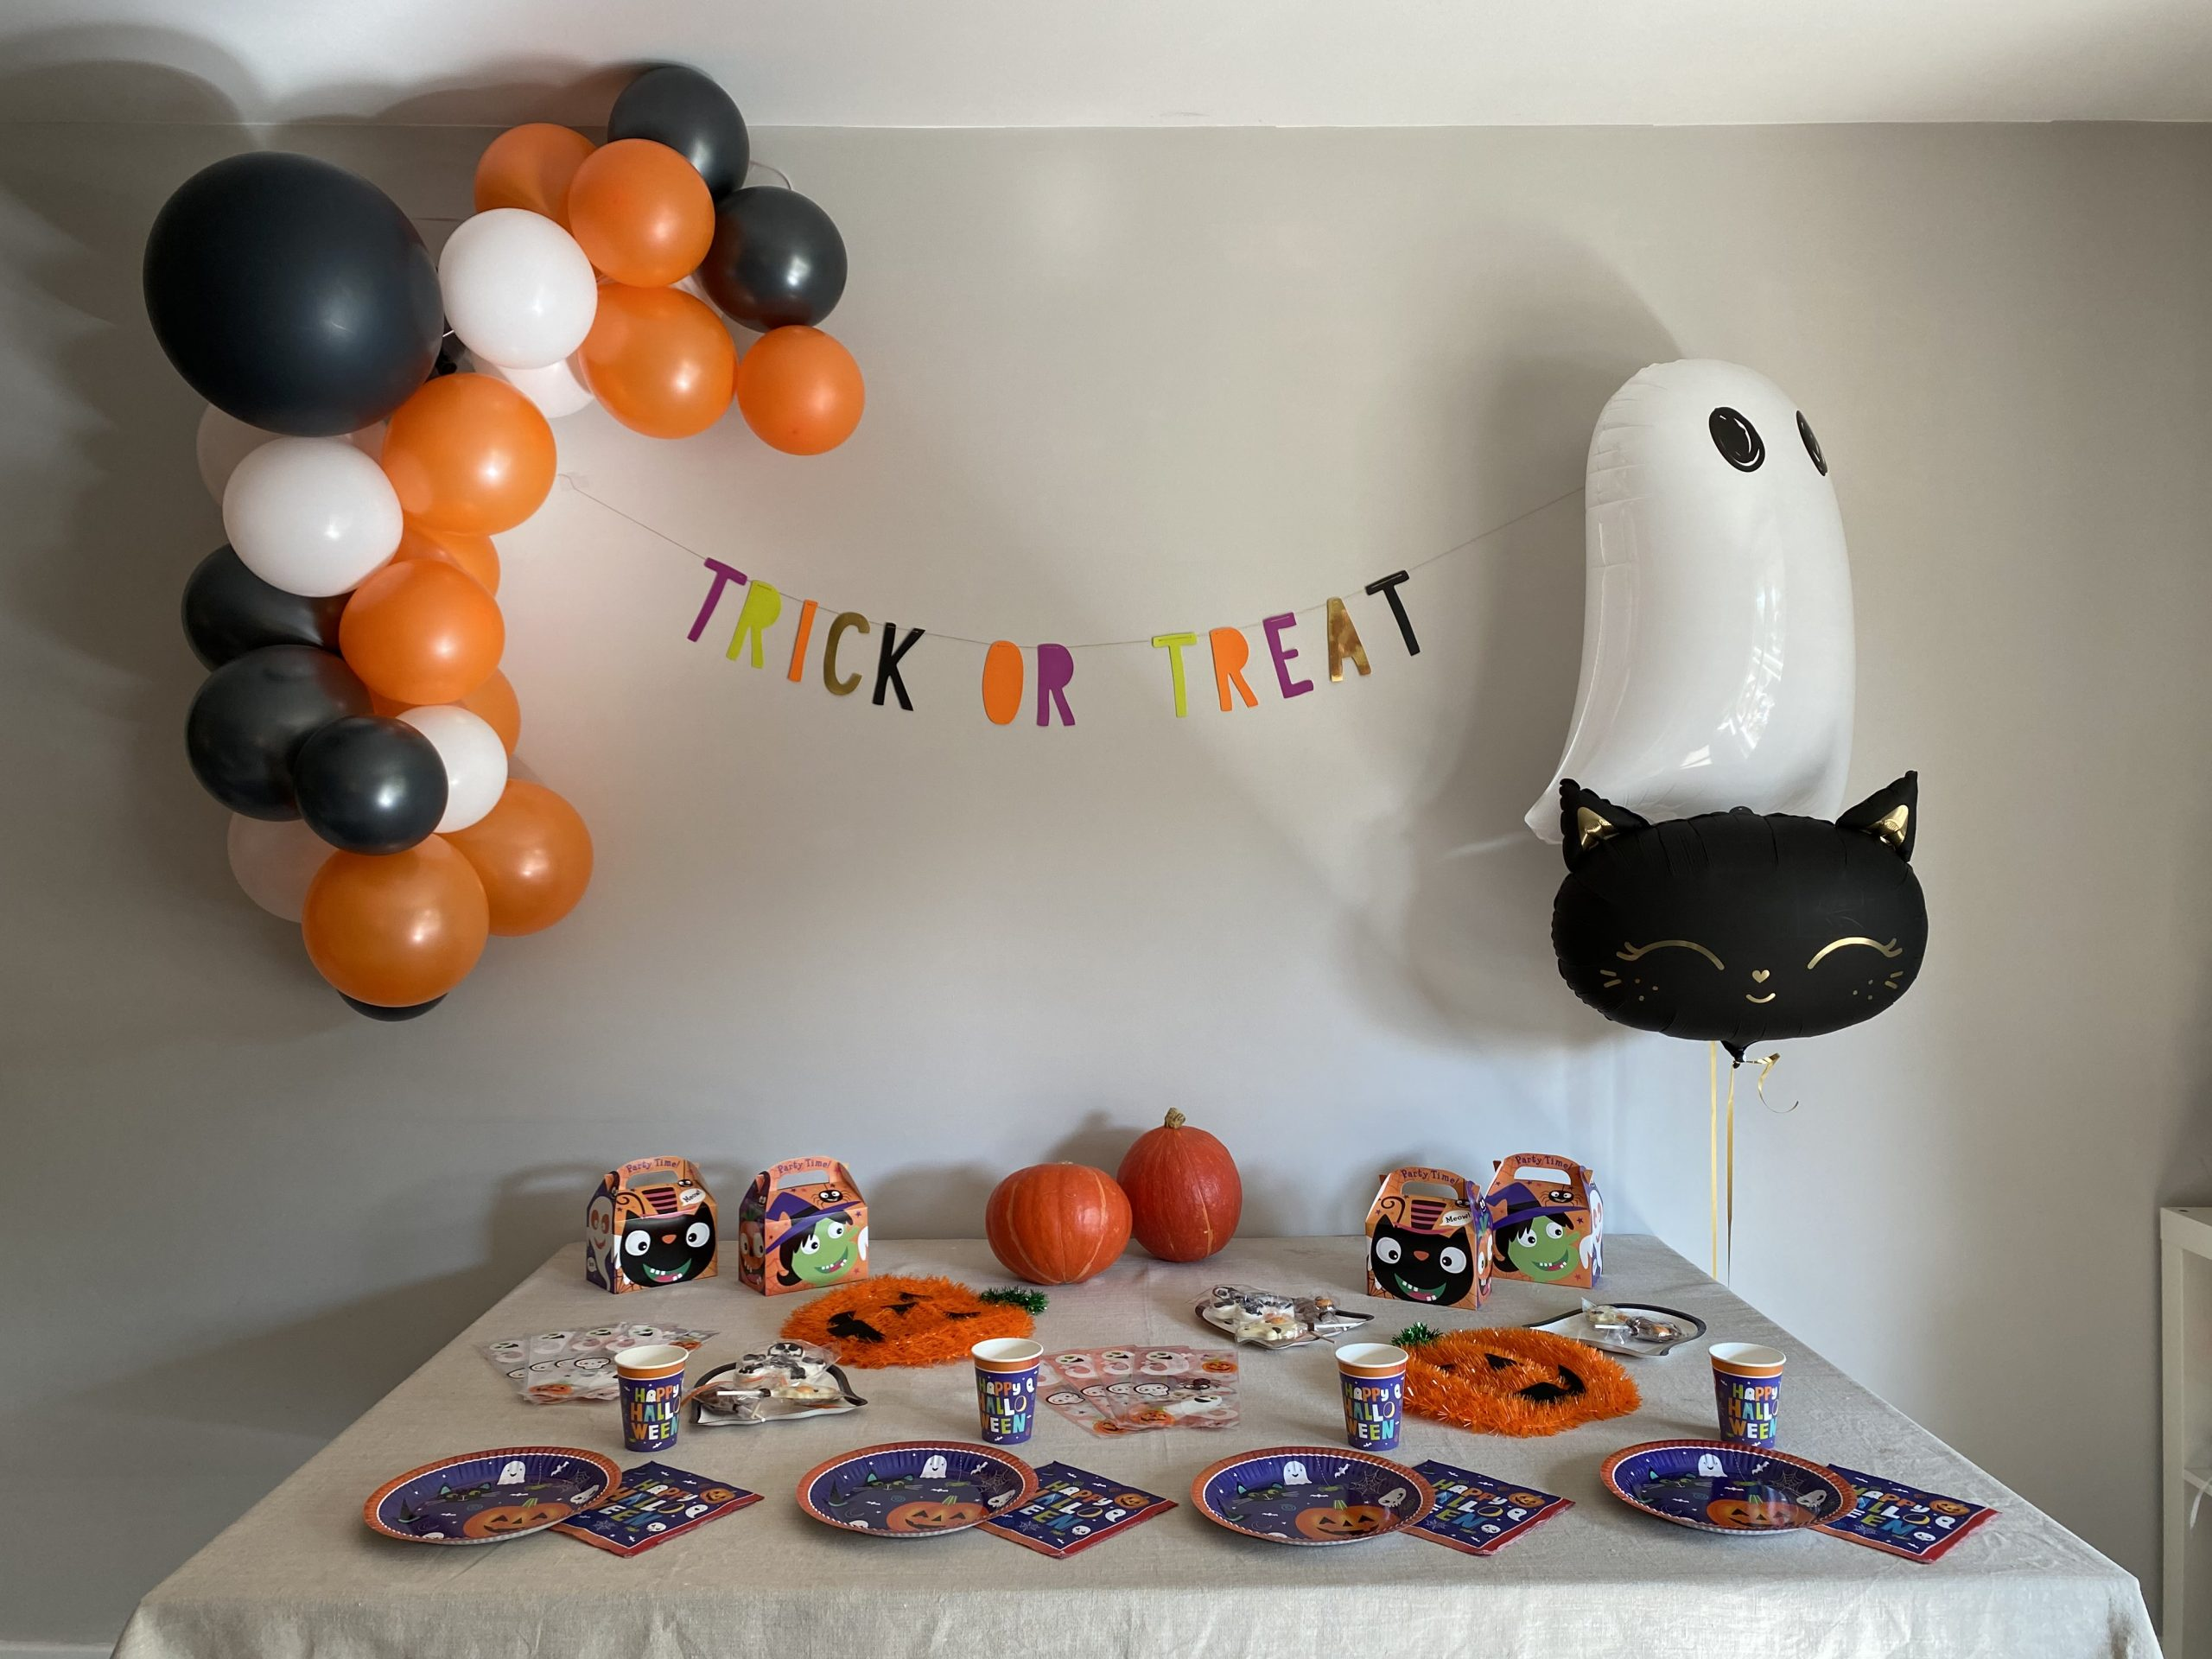 Trick or Treat Party Decorations